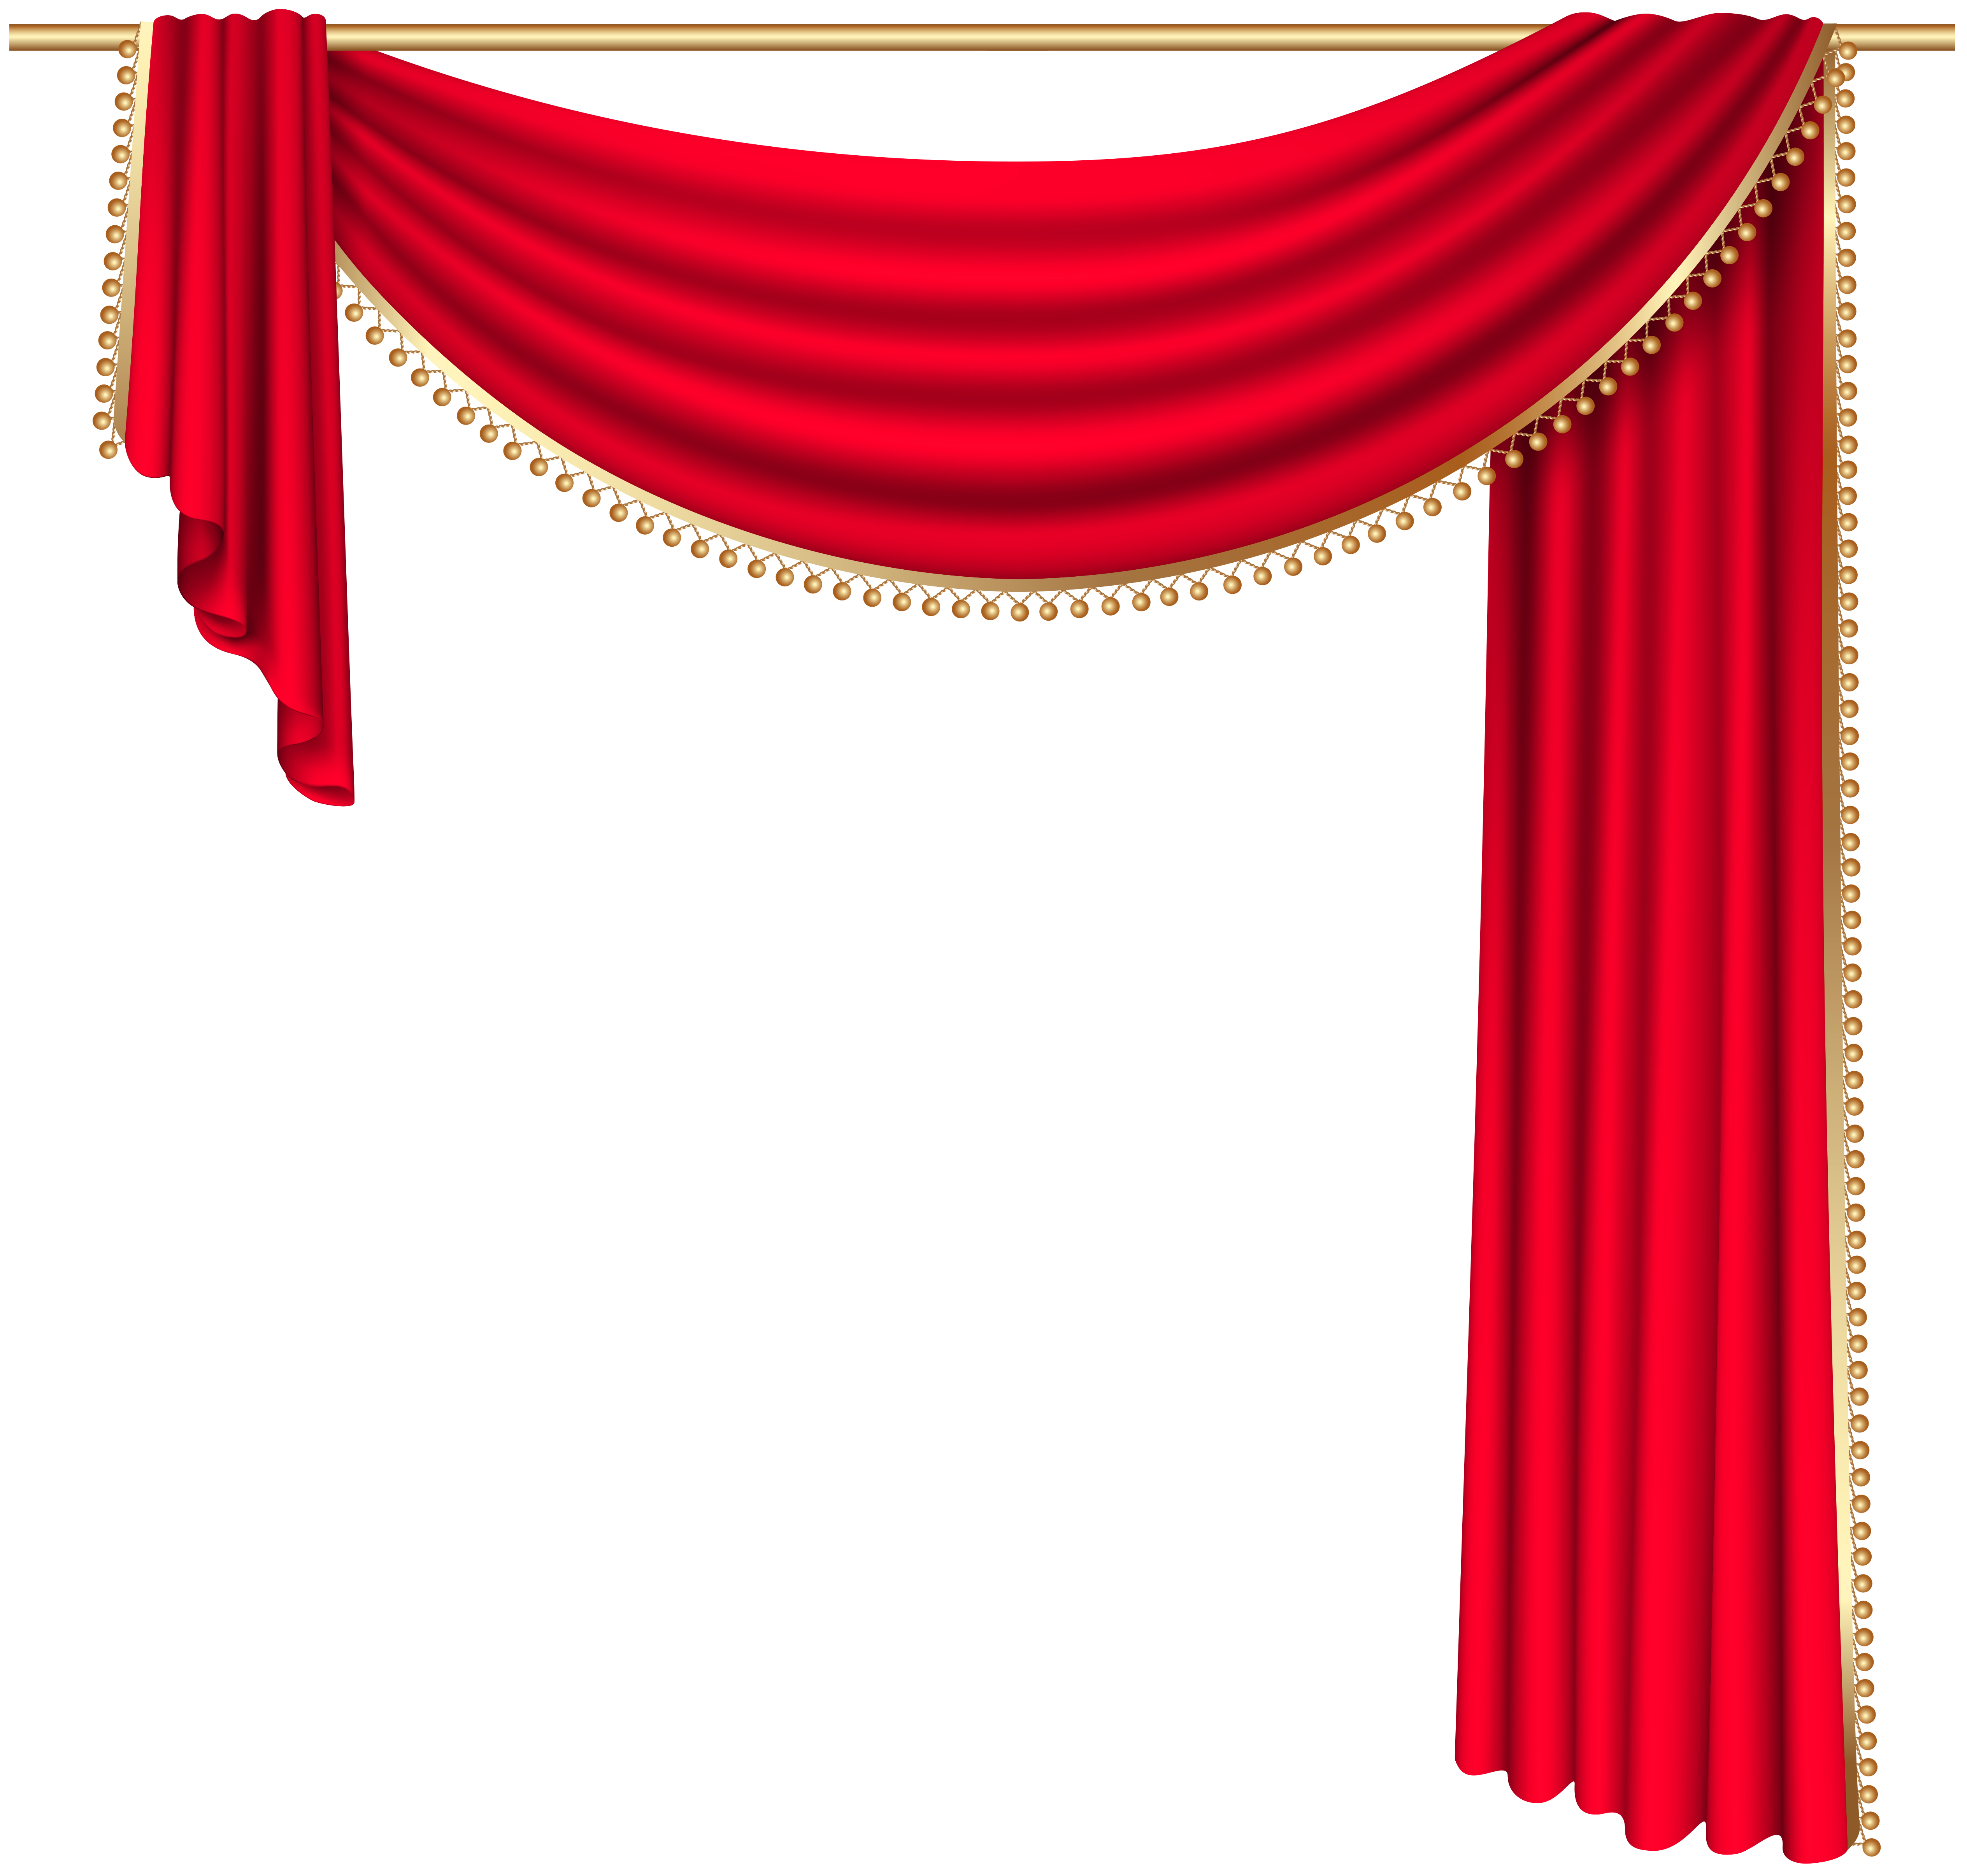 Free clipart images of drapery curtains clipart transparent download Pin by Mukesh Kumar on Mukesh | Curtains vector, Curtains, Red curtains clipart transparent download